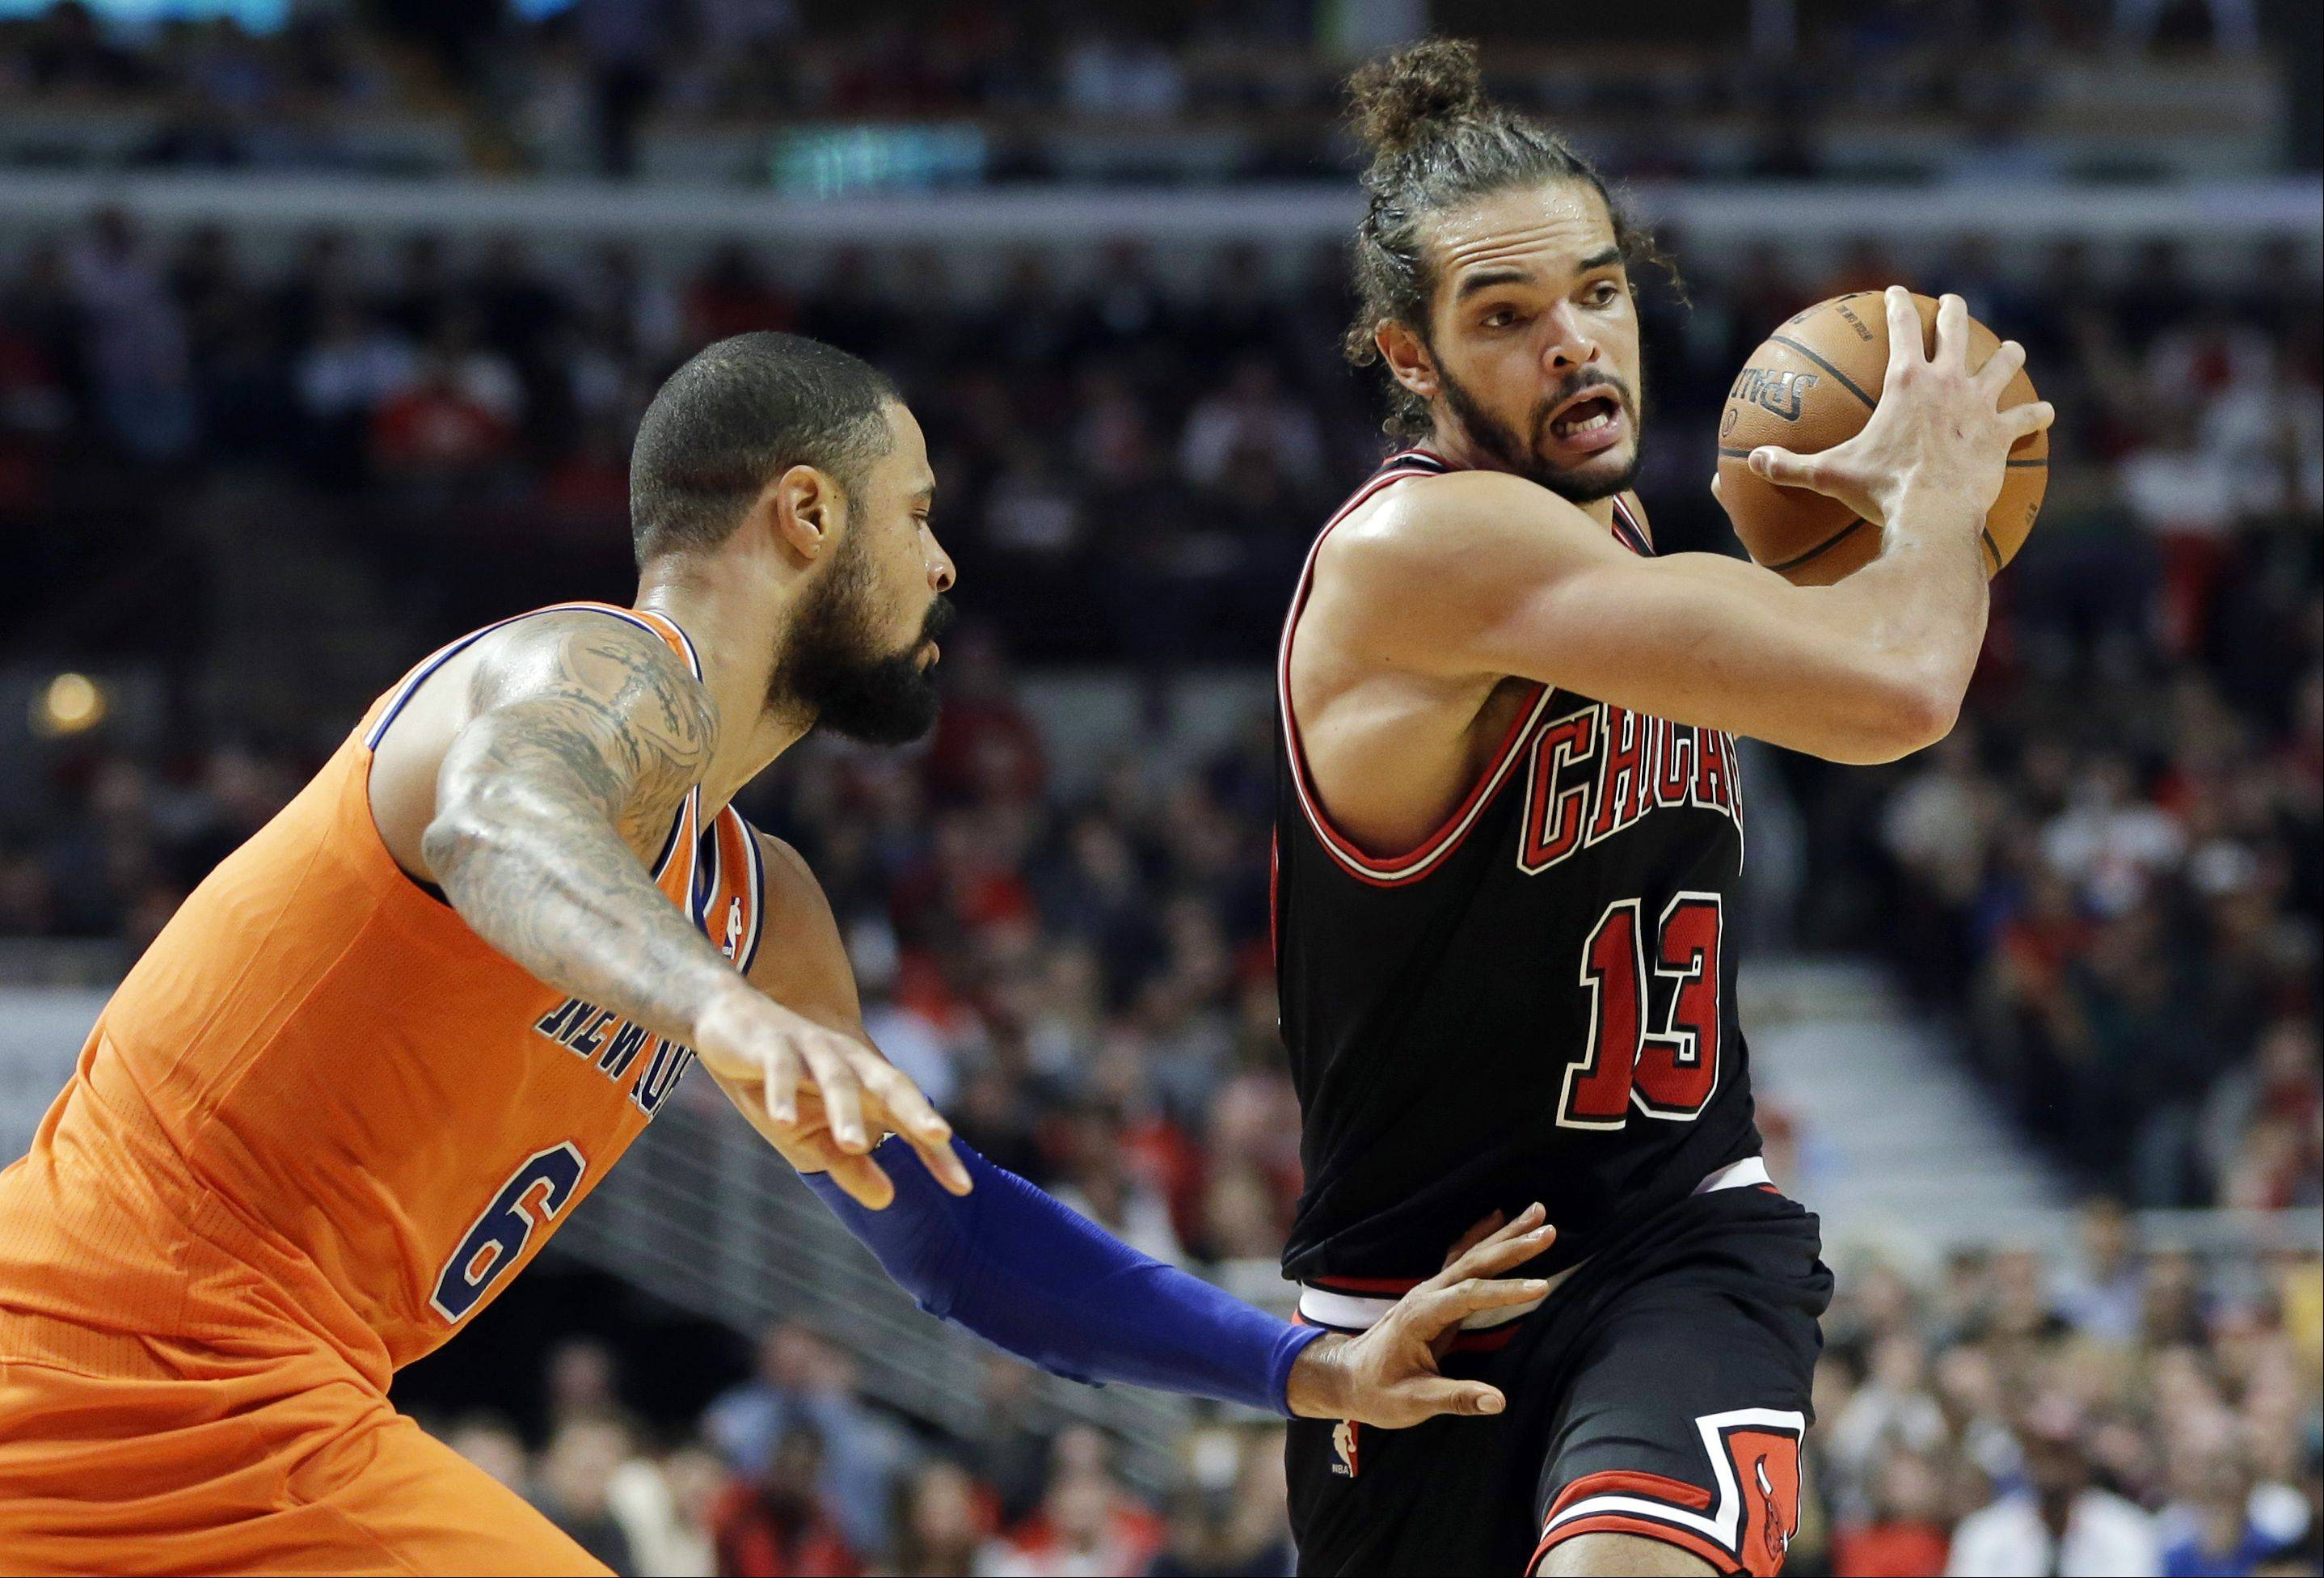 Chicago Bulls center Joakim Noah, right, looks to pass as New York Knicks center Tyson Chandler guards during the second half.